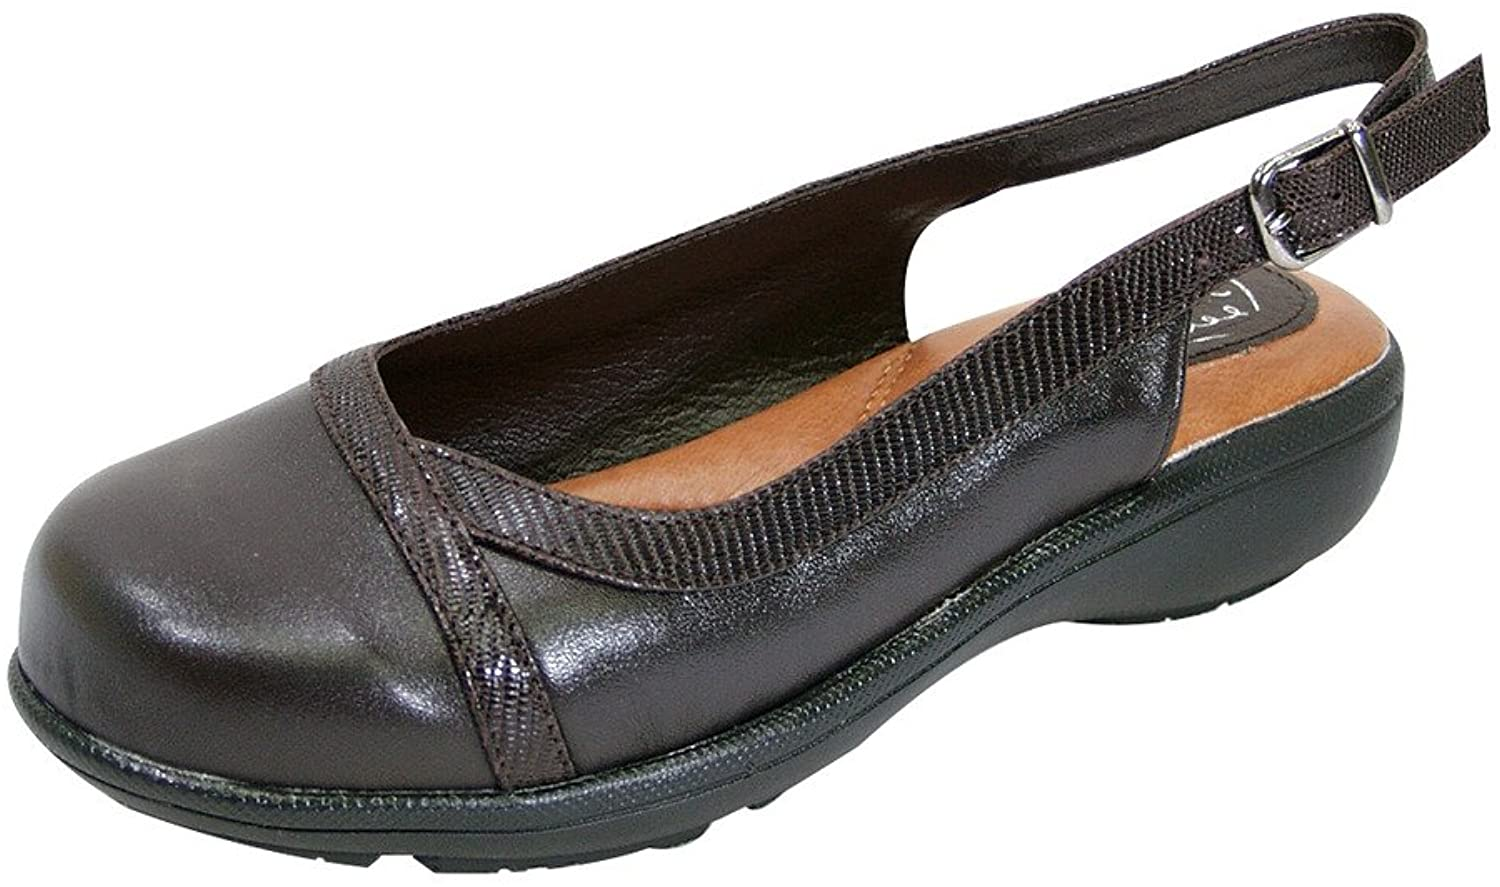 Peerage FIC June Women Extra Wide Width Leather Slingback Clog Brown 8.5